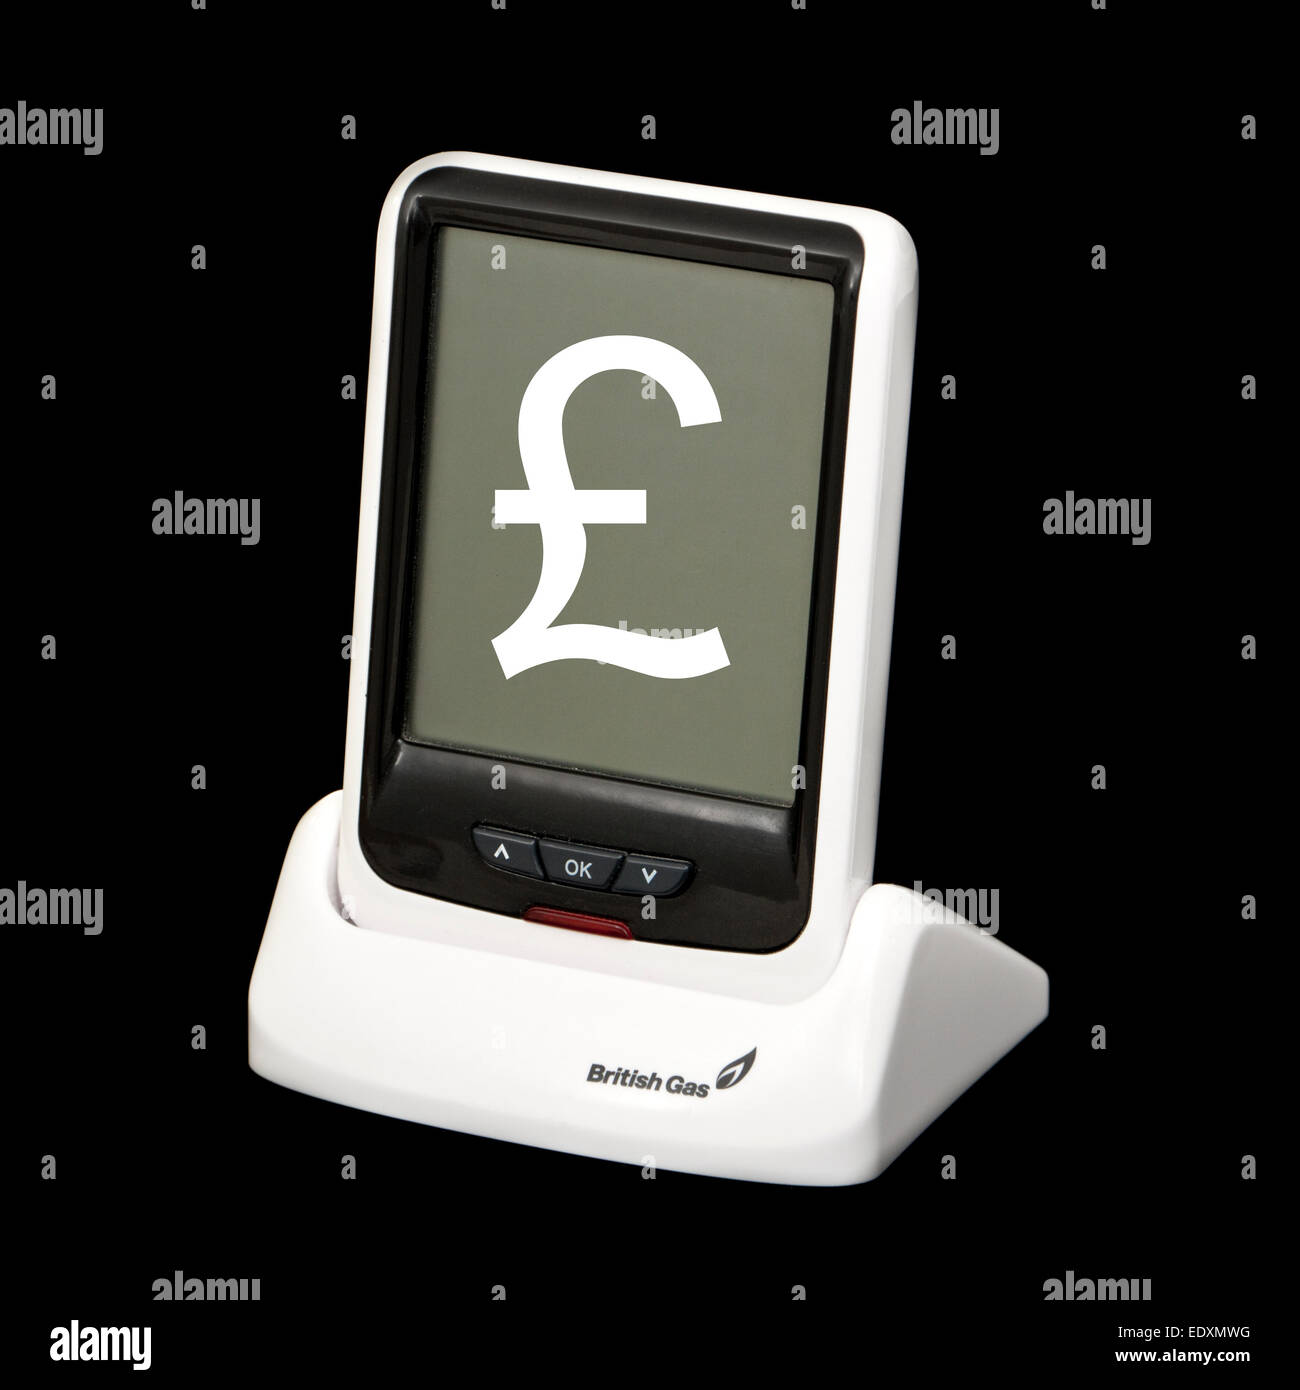 British Gas smart meter (real-time electricity monitor) with £-sign superimposed on screen - Stock Image